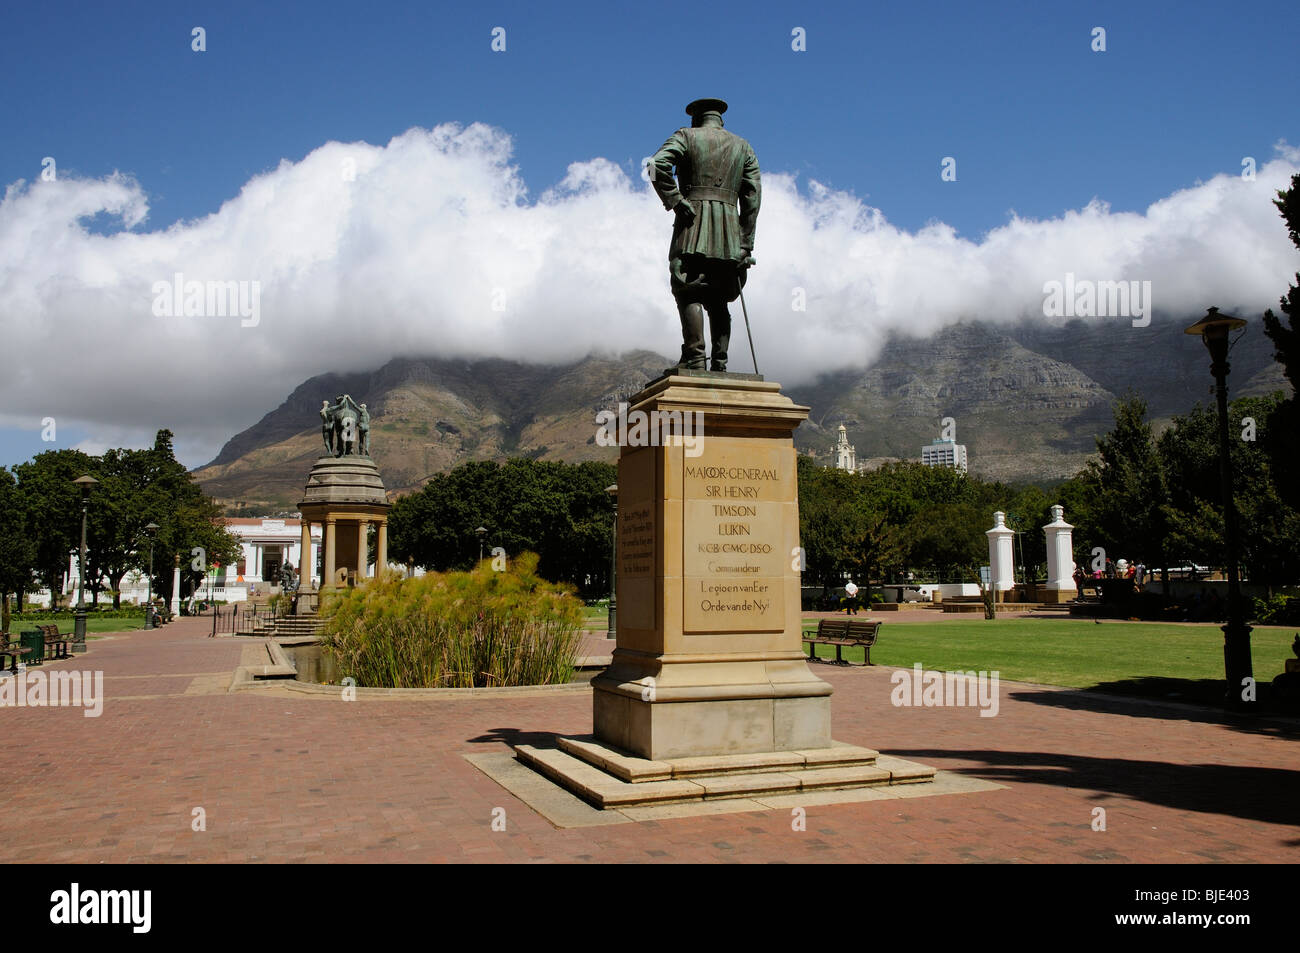 Company's Garden in Cape Town's city centre with a backdrop of Table Mountain covered in cloud - Stock Image